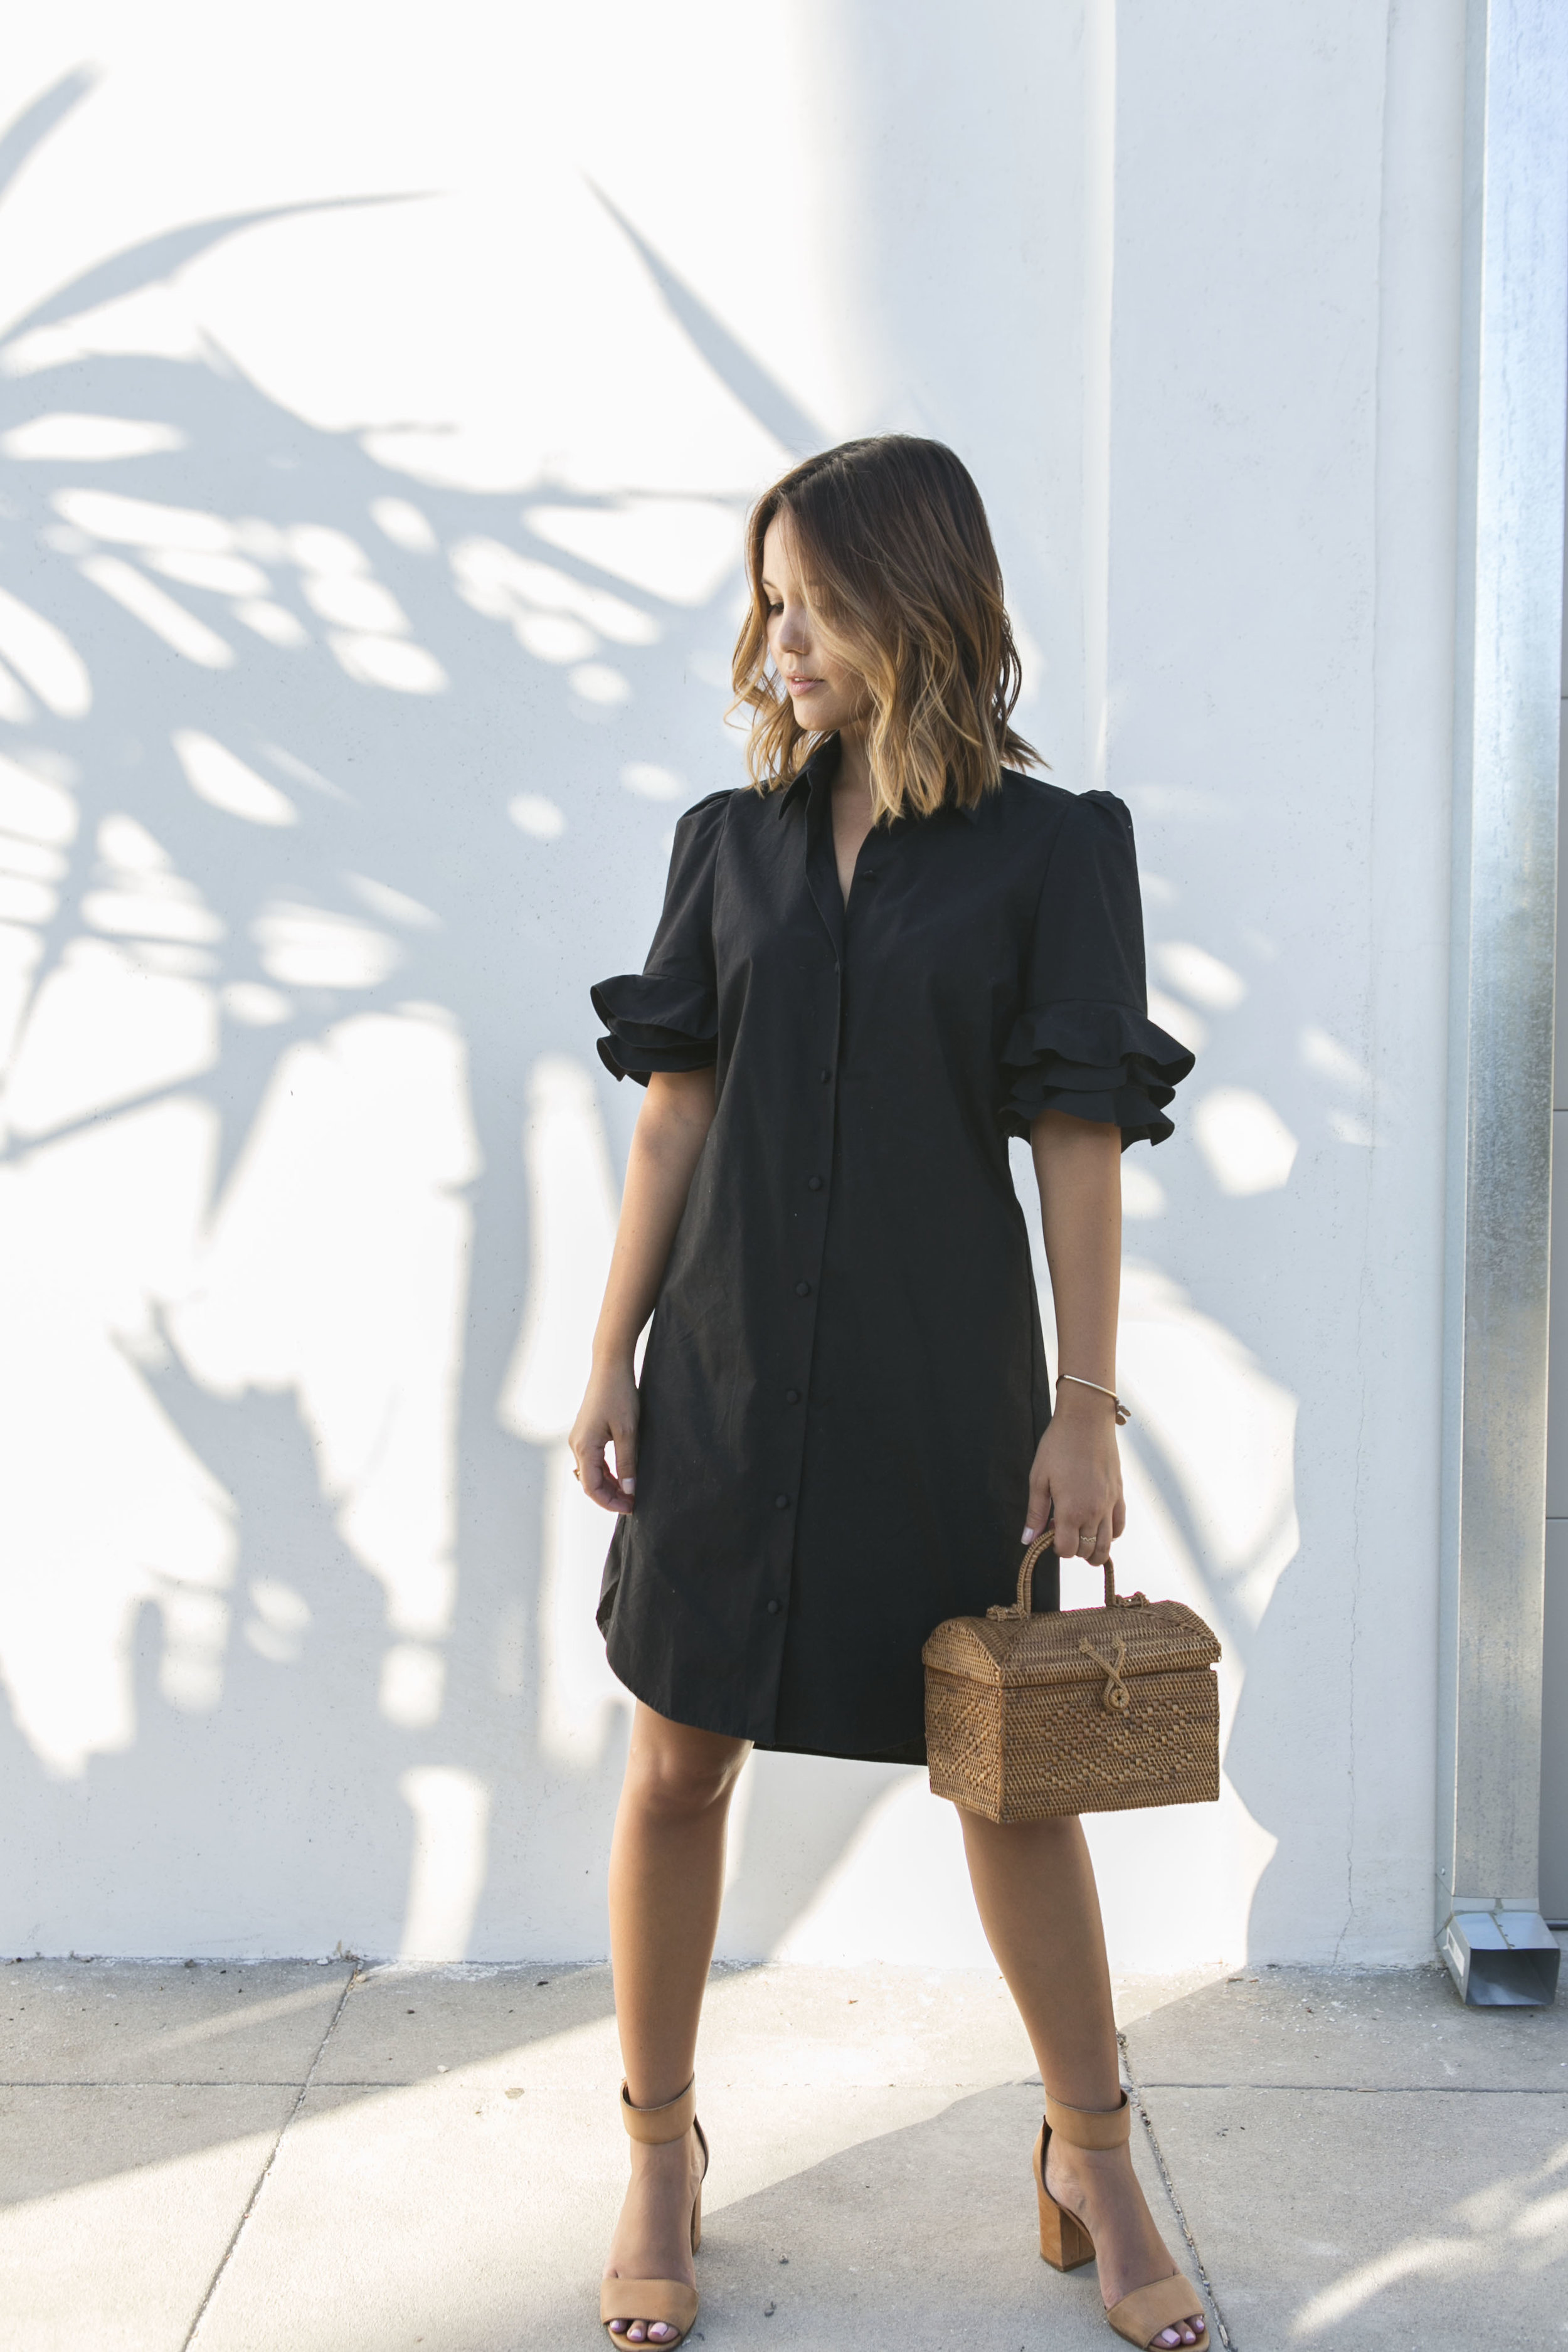 Structured silk shirtdress // A Week Of Intentional & Sustainable Outfits With Kasha Cabato From Green With Style on The Good Trade